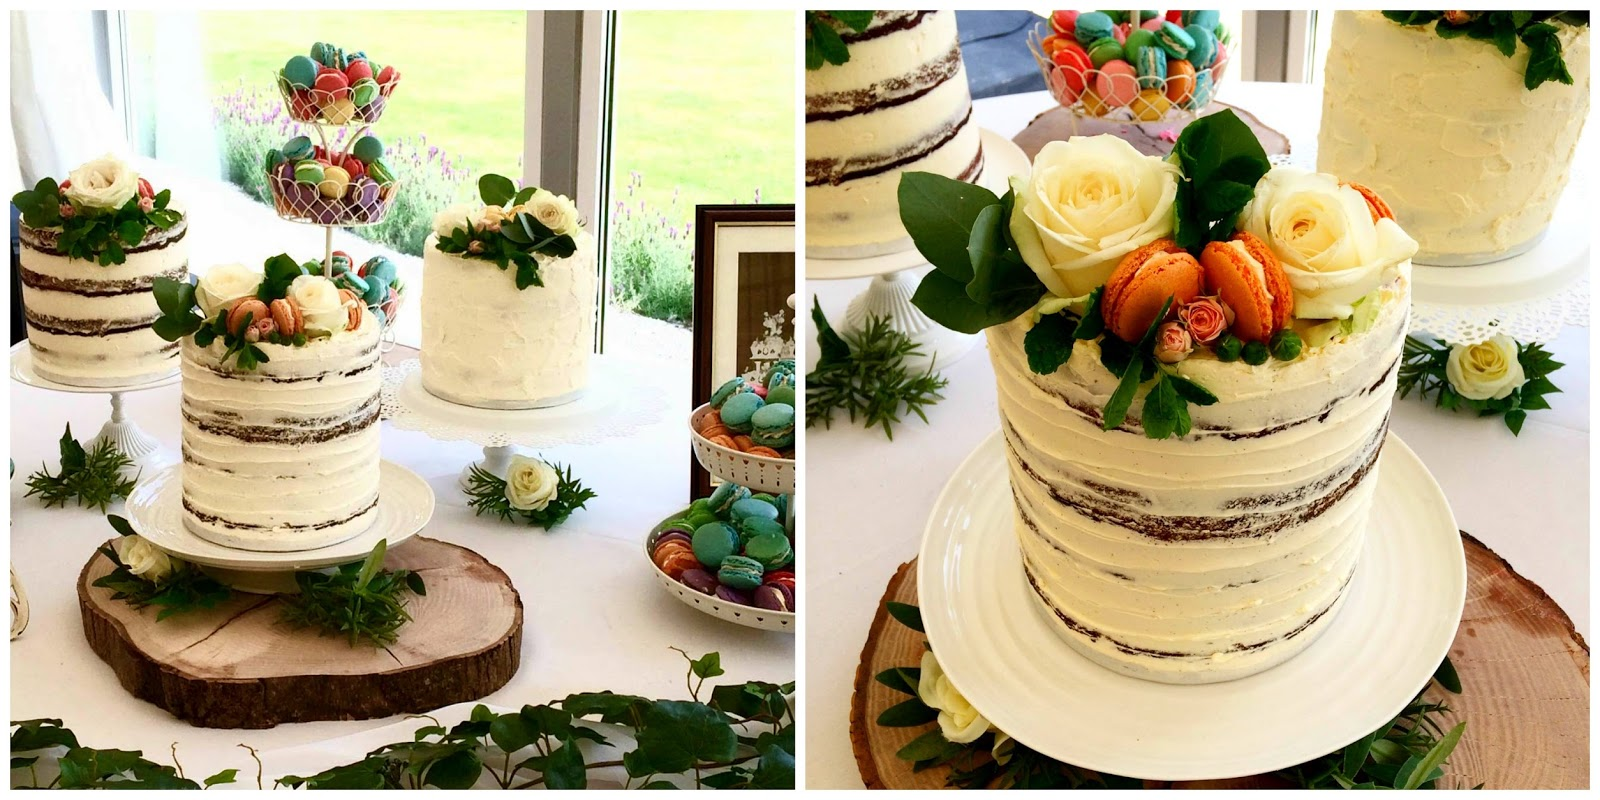 Two Of Our Very Good Friends Got Married And Trying To Fit Three Layer Cakes 350 Macaron A Great British Bake Off Post